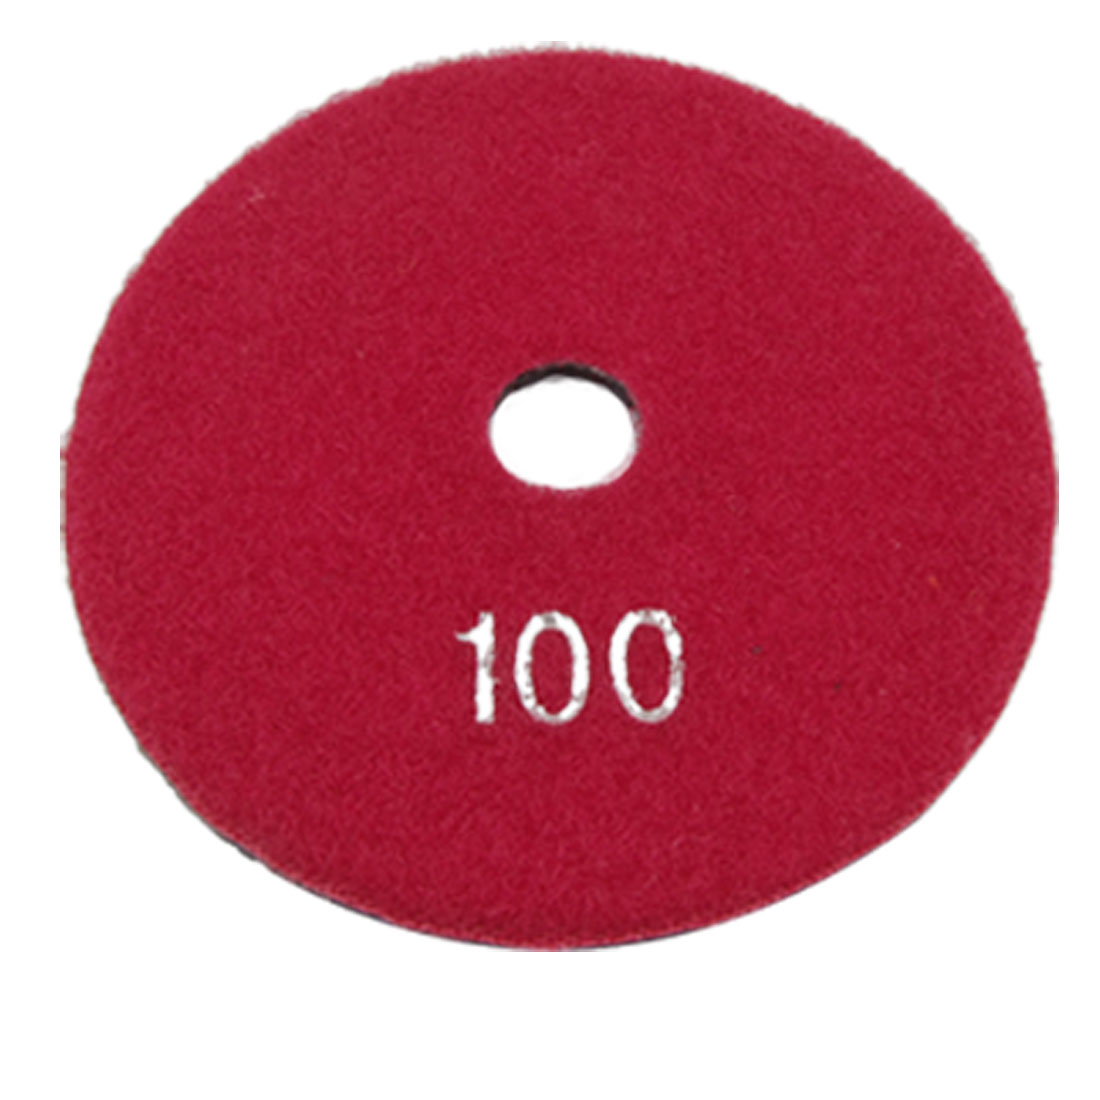 100 Grit Marble Concrete Granite Diamond Resin Polishing Pad 4 Inch Red